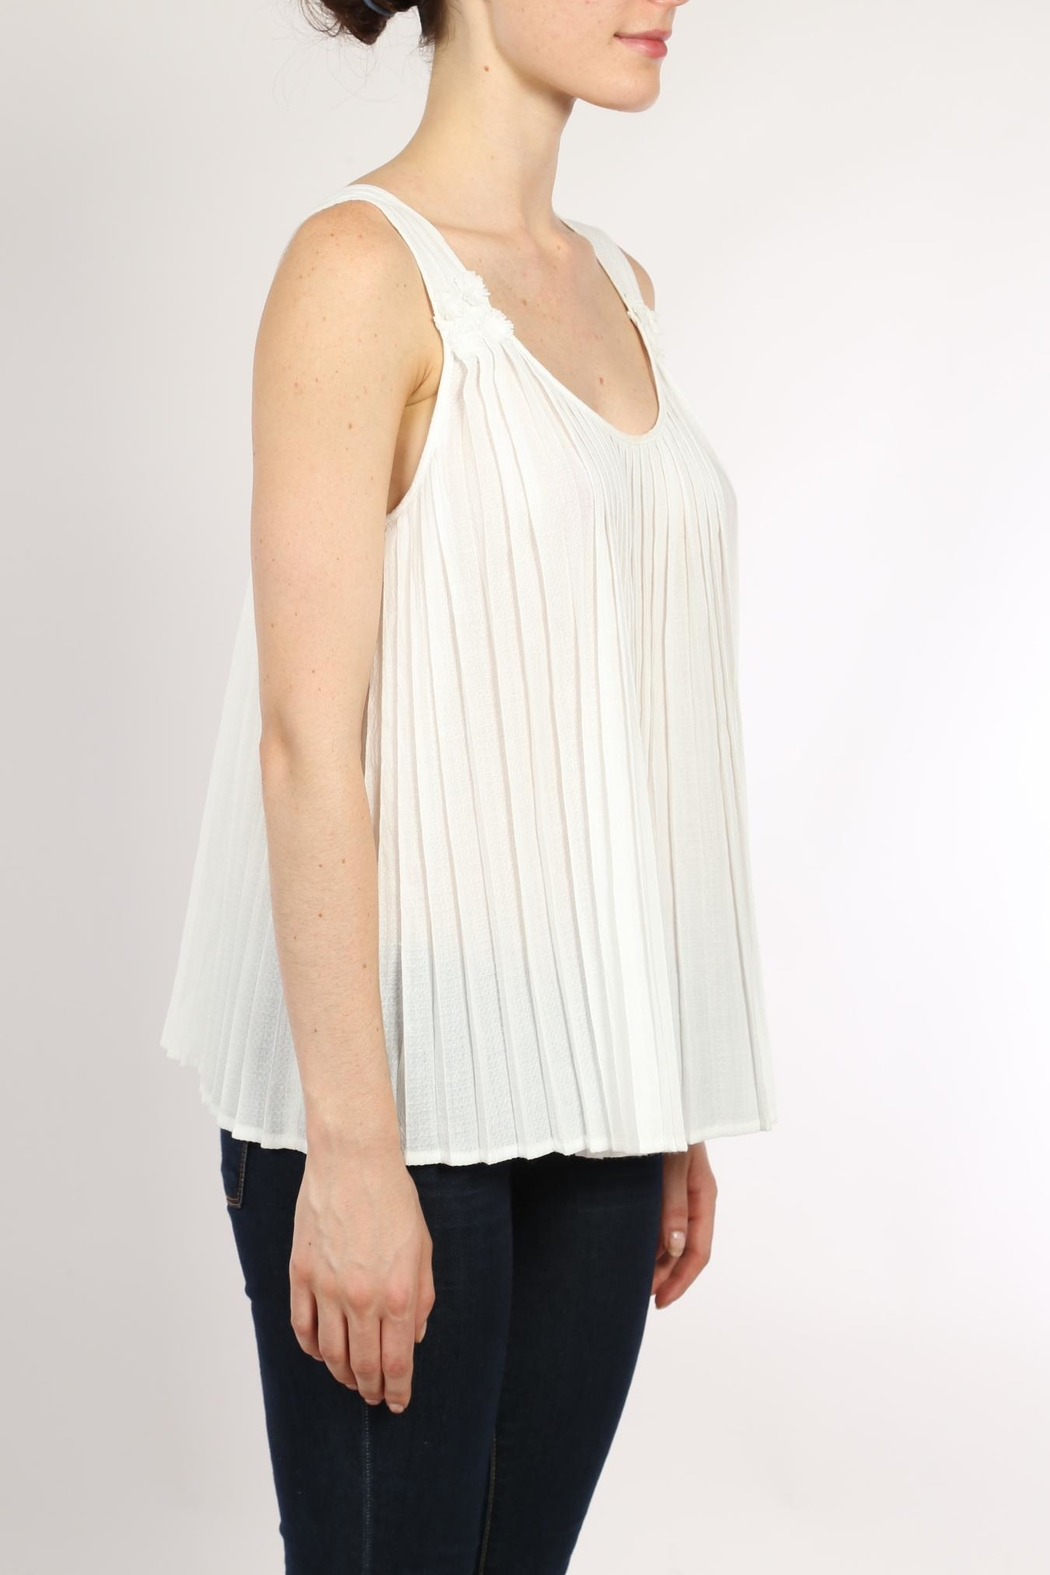 Movint White Pleated Top - Front Full Image